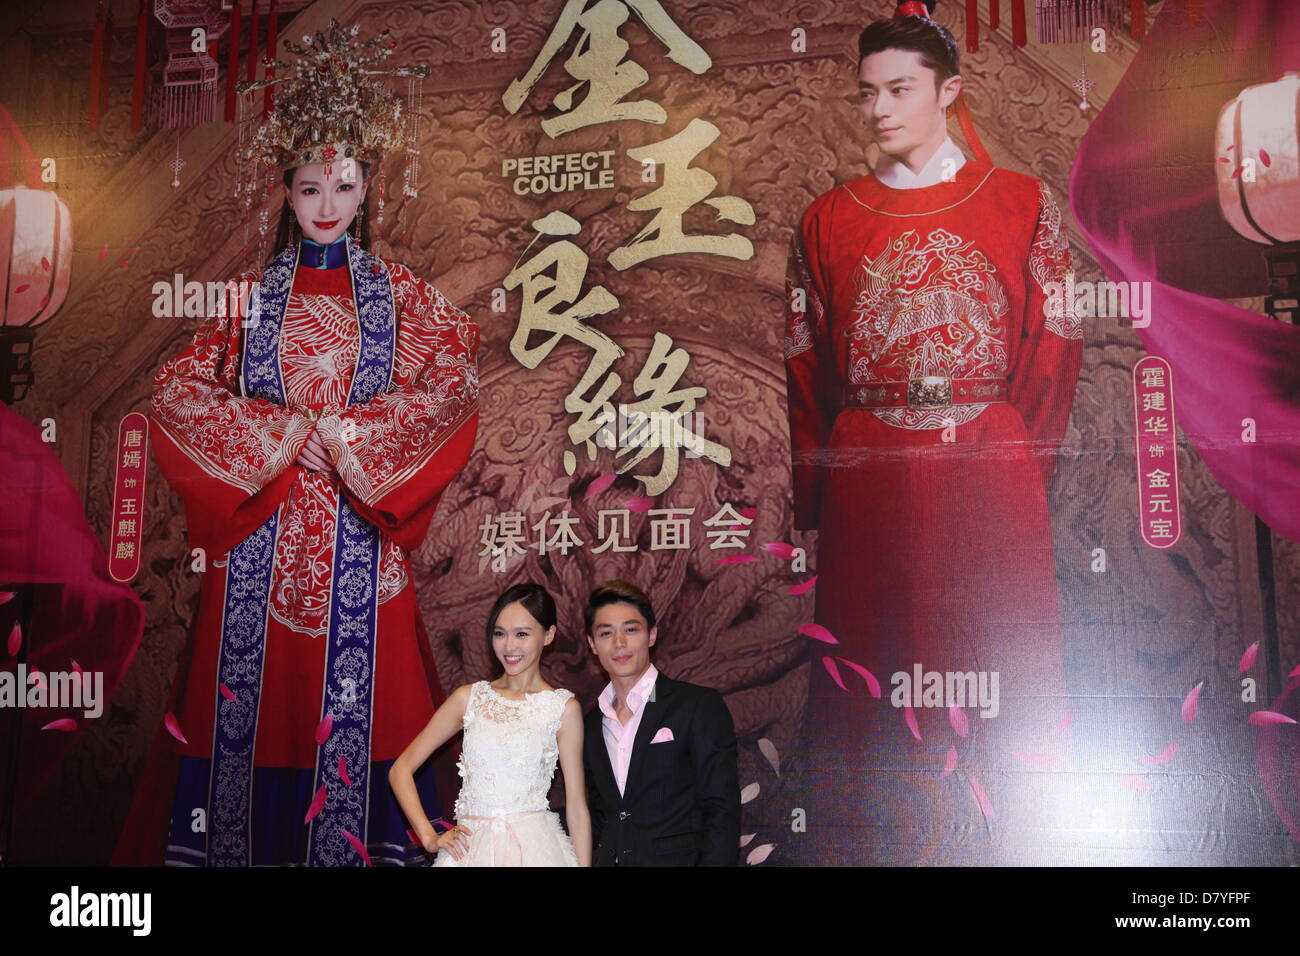 Wallace Huo at press conference of TV drama Perfect Couple in Stock